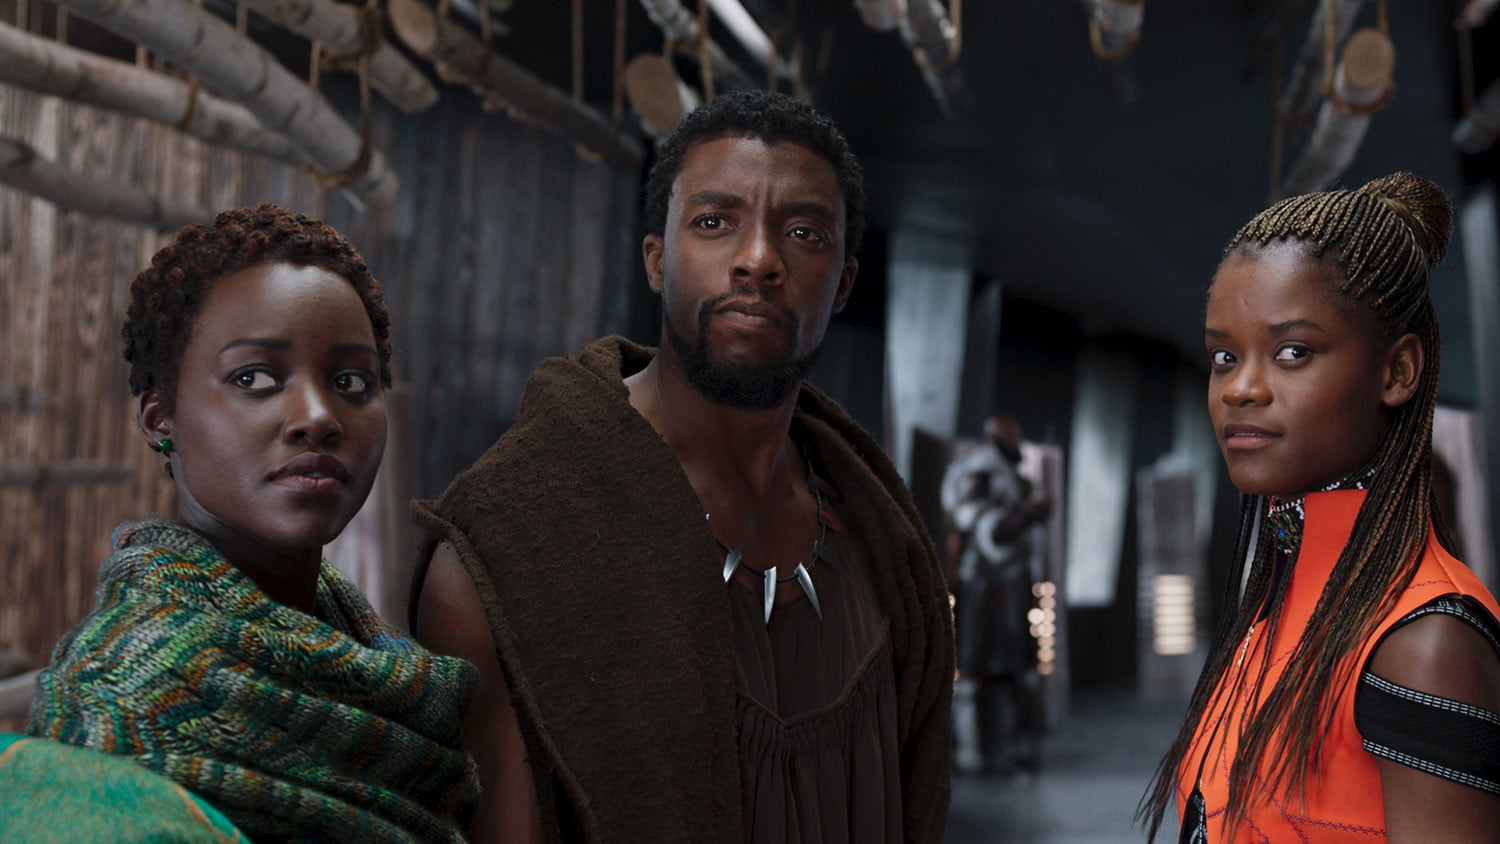 The cast of Black Panther